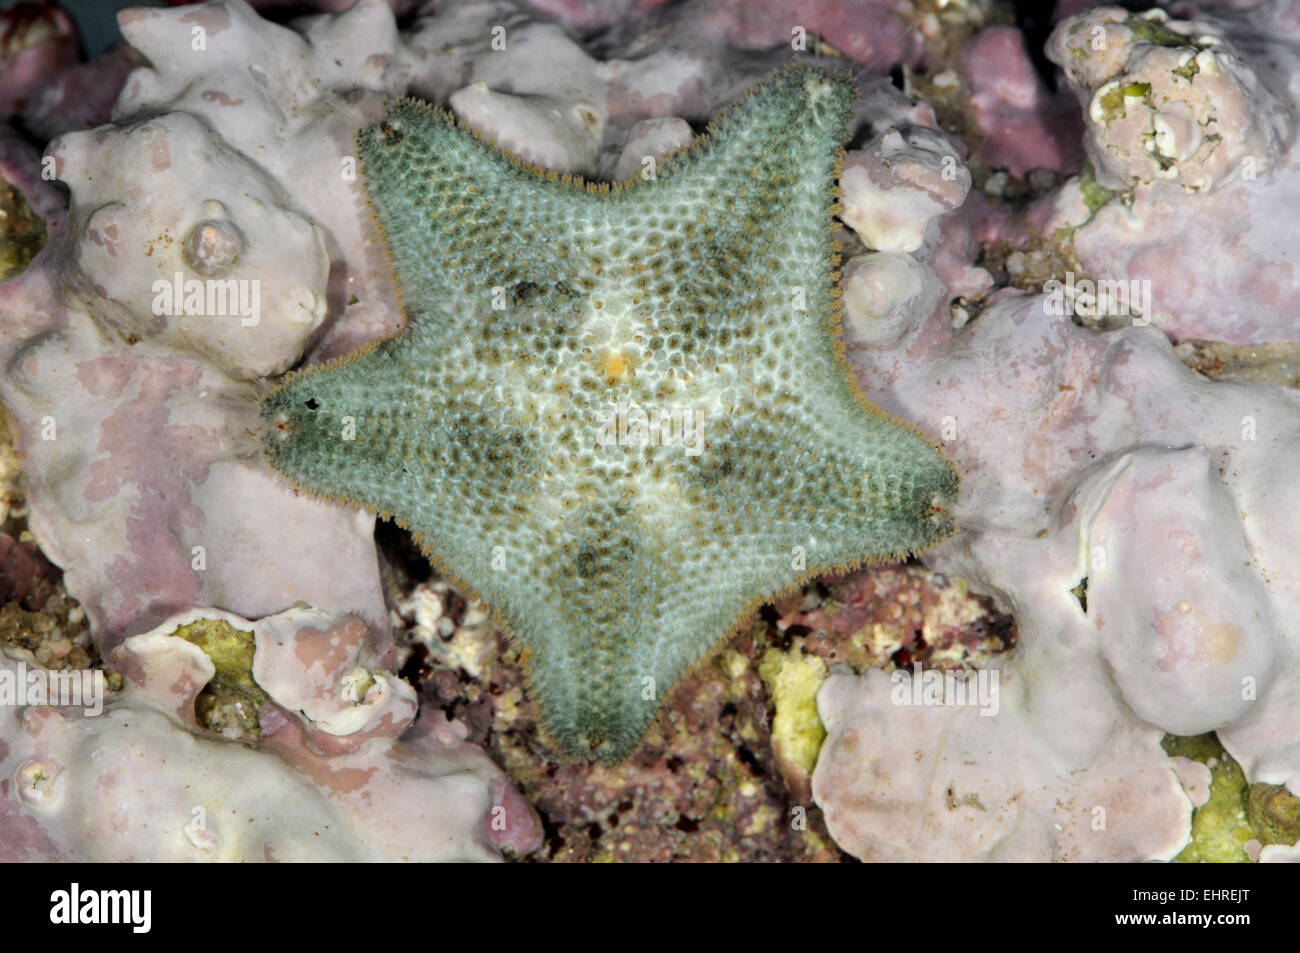 Cushion Star - Asterina gibbosa - Stock Image